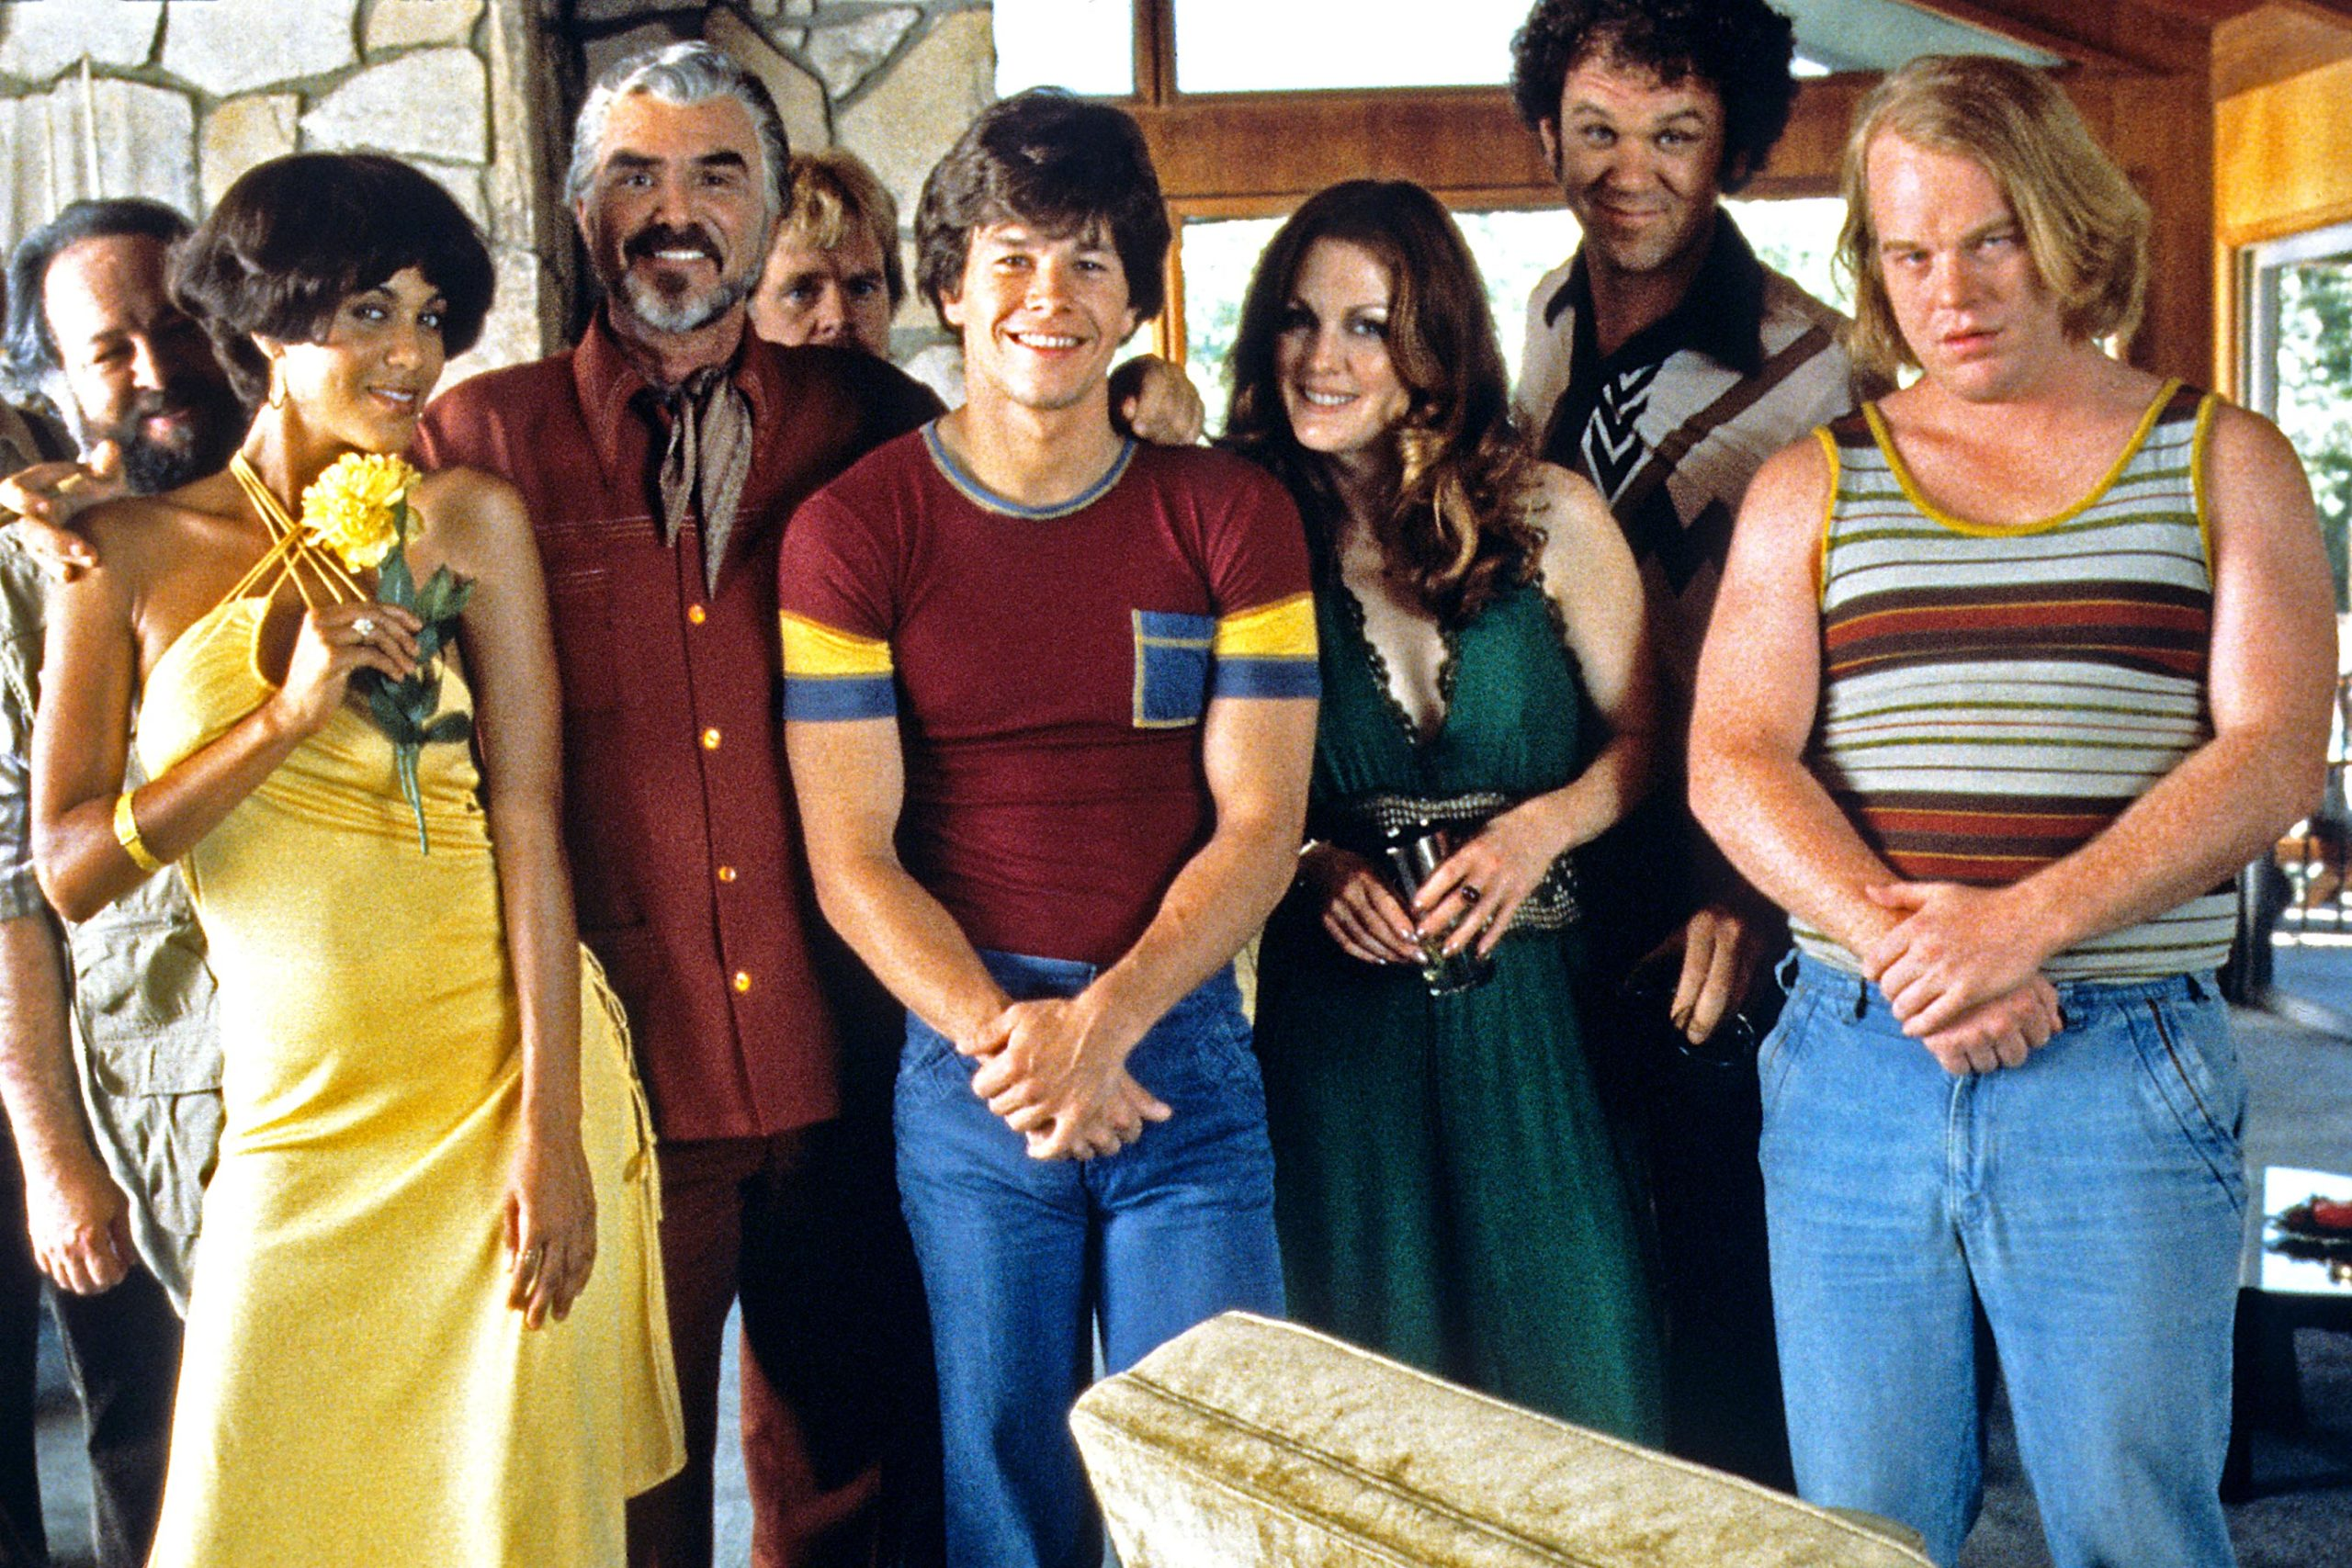 BOOGIE NIGHTS Movies You've Probably Never Heard Of